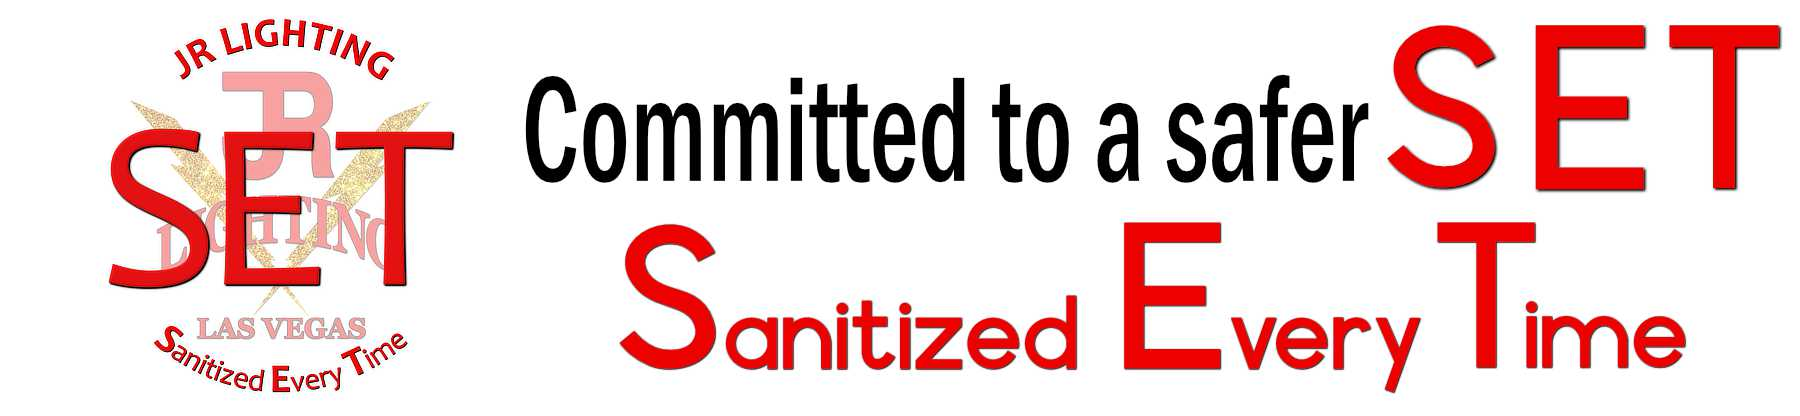 JR Lighting is Committed to a safer SET - Sanitized Every Time